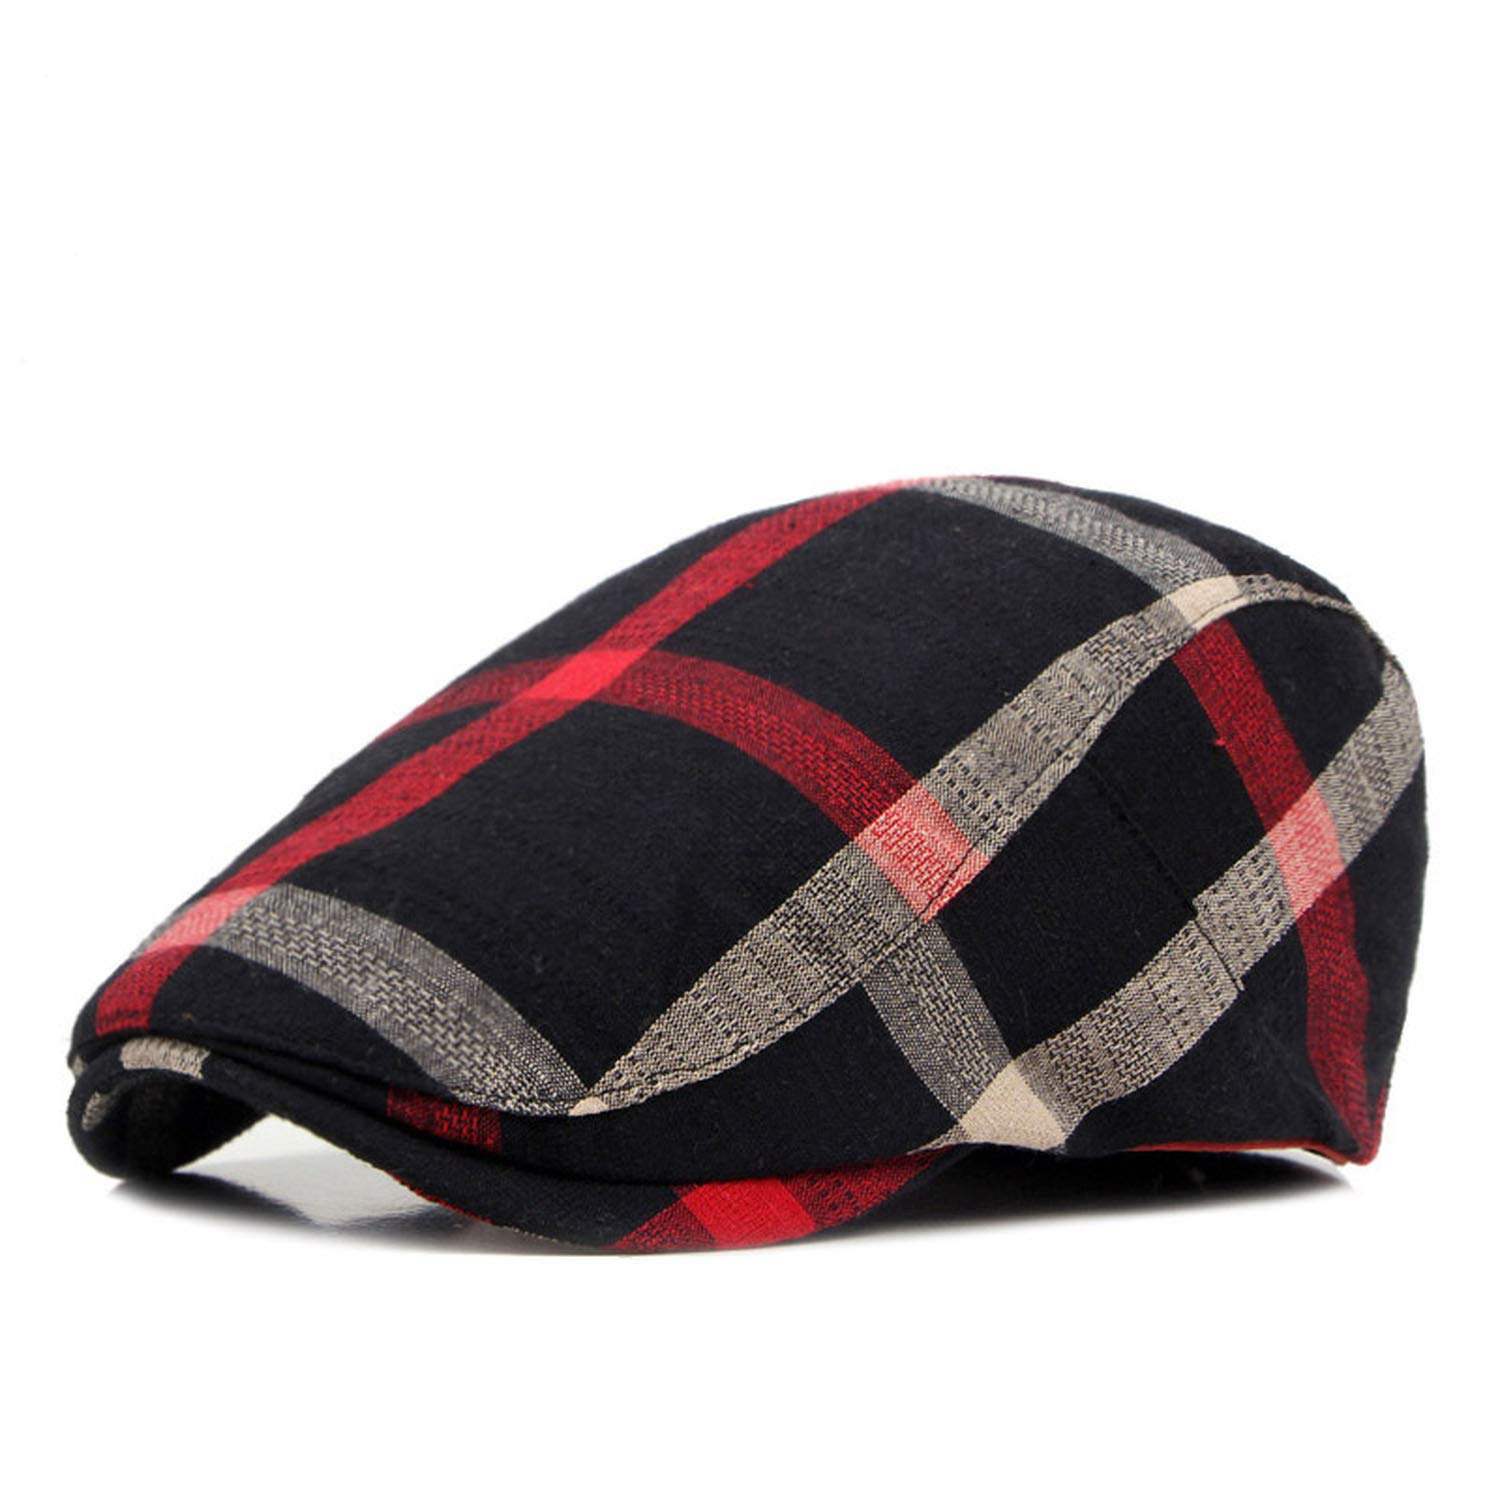 Unisex Classic Plaid Berets Caps for Men Casual Cotton Flat Cap Women Newsboys Gatsby Casquette Peaked Cap Black at Amazon Womens Clothing store: